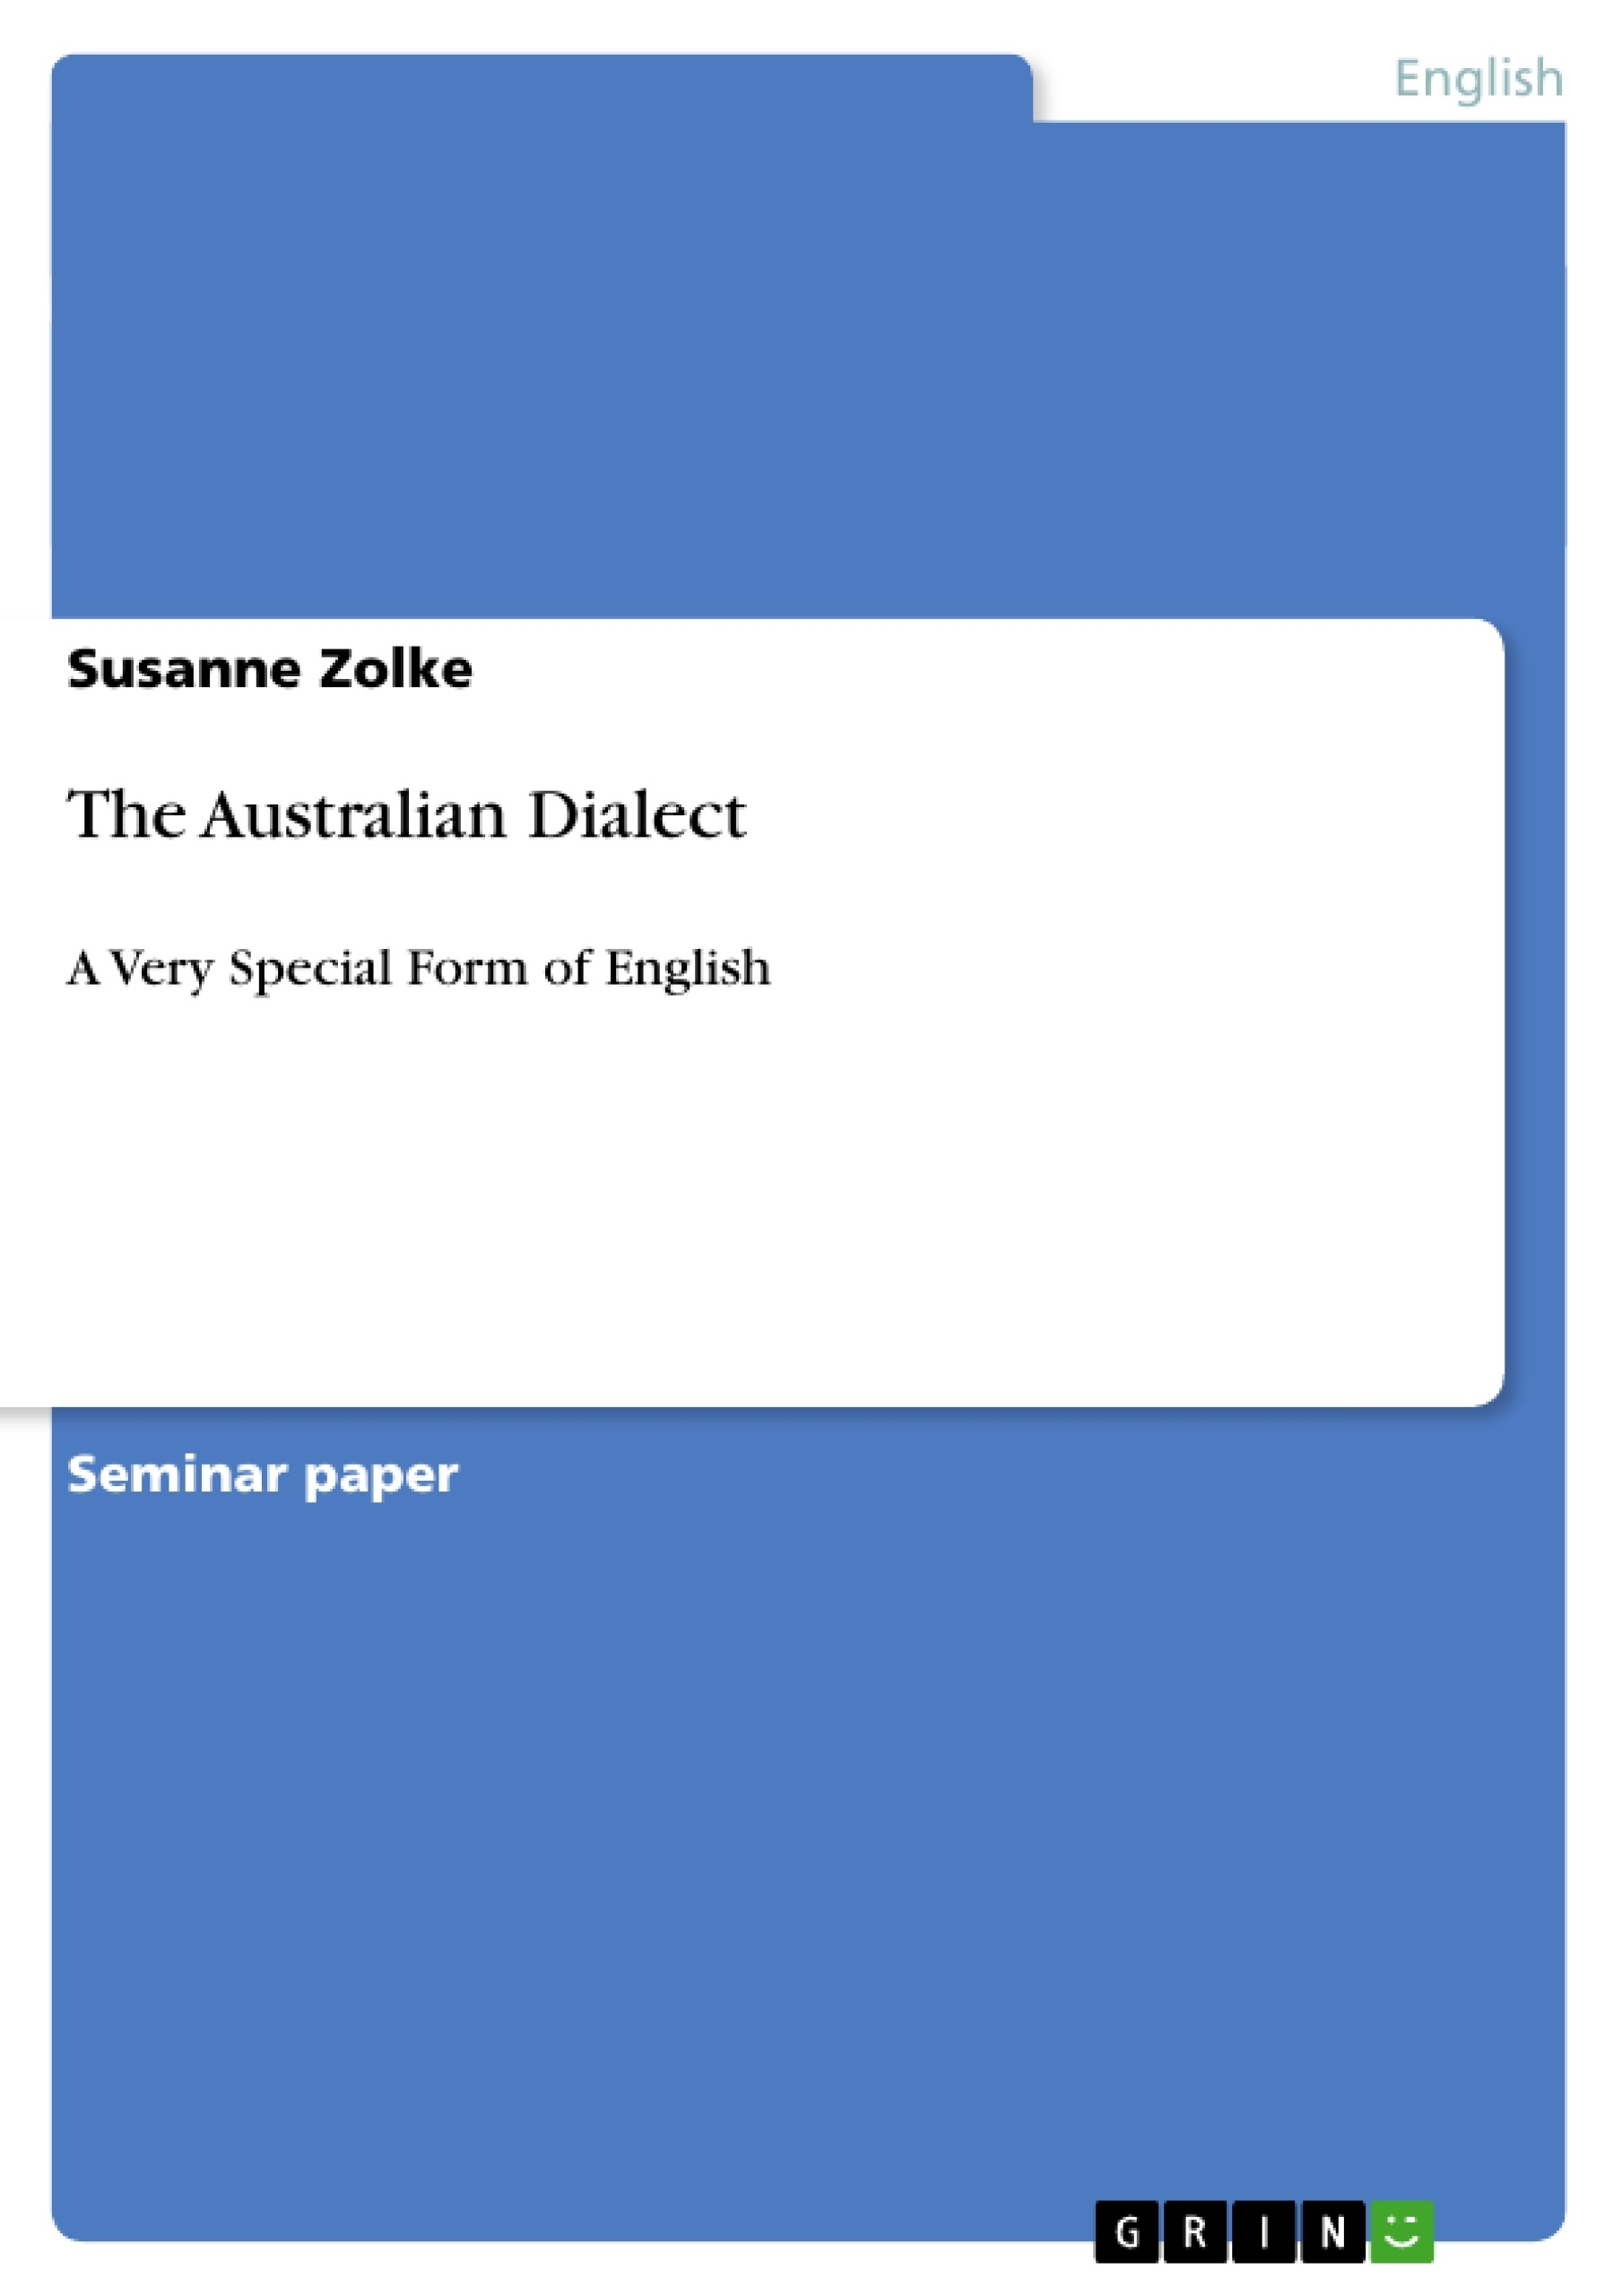 Title: The Australian Dialect